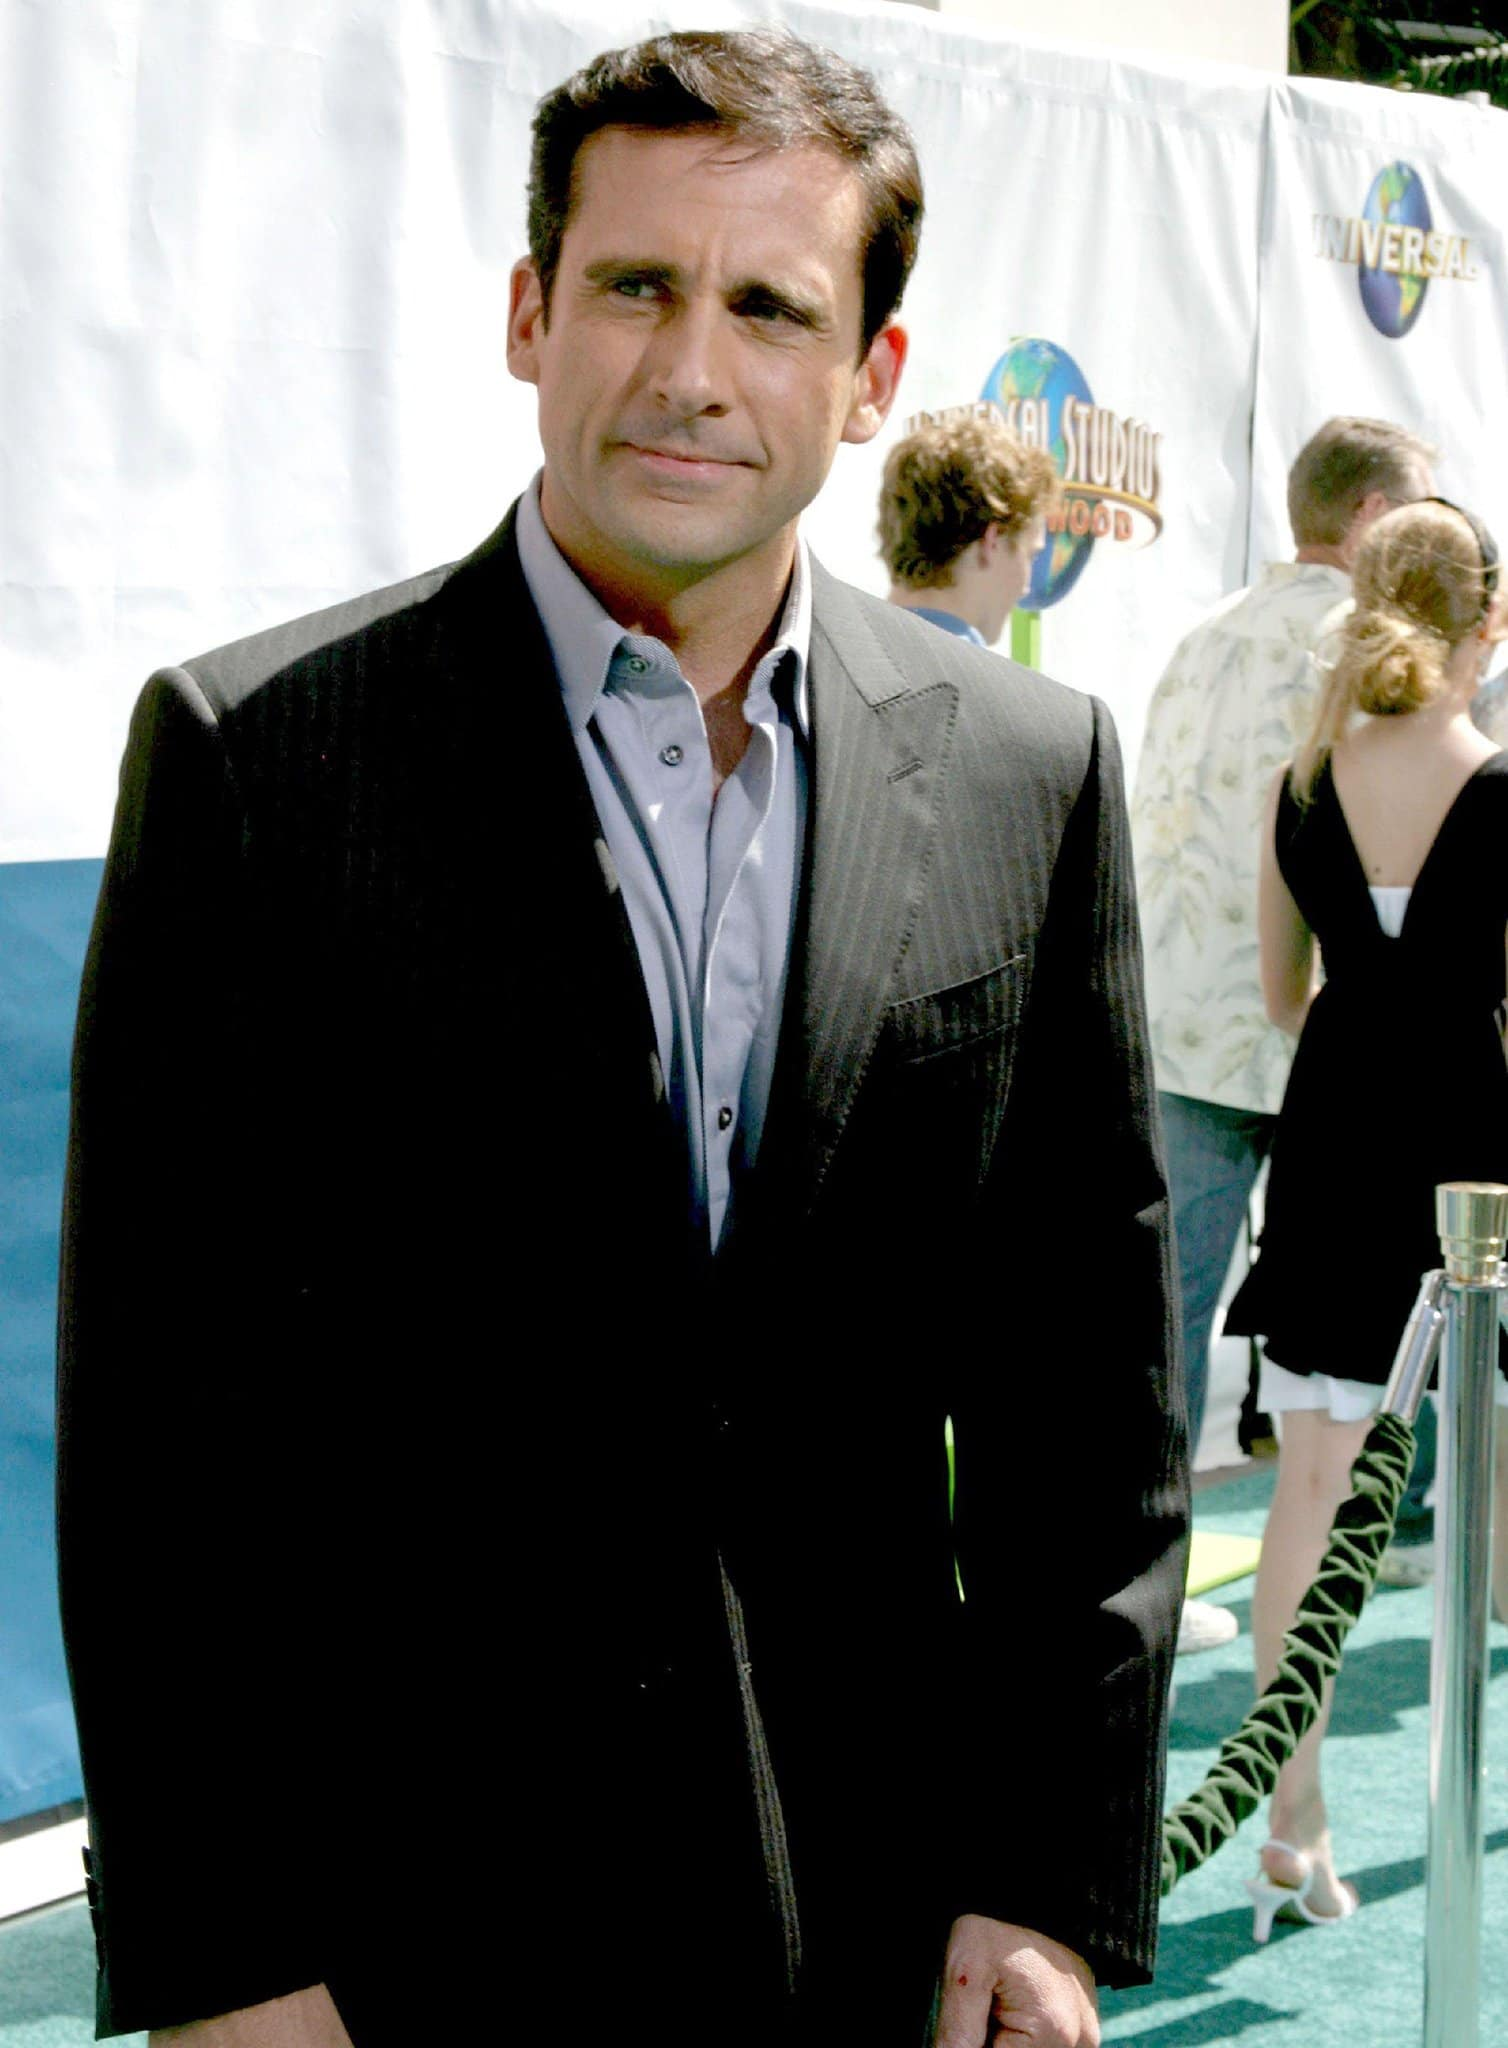 While working on The Office, Steve Carell starred in several films, including Evan Almighty in 2007